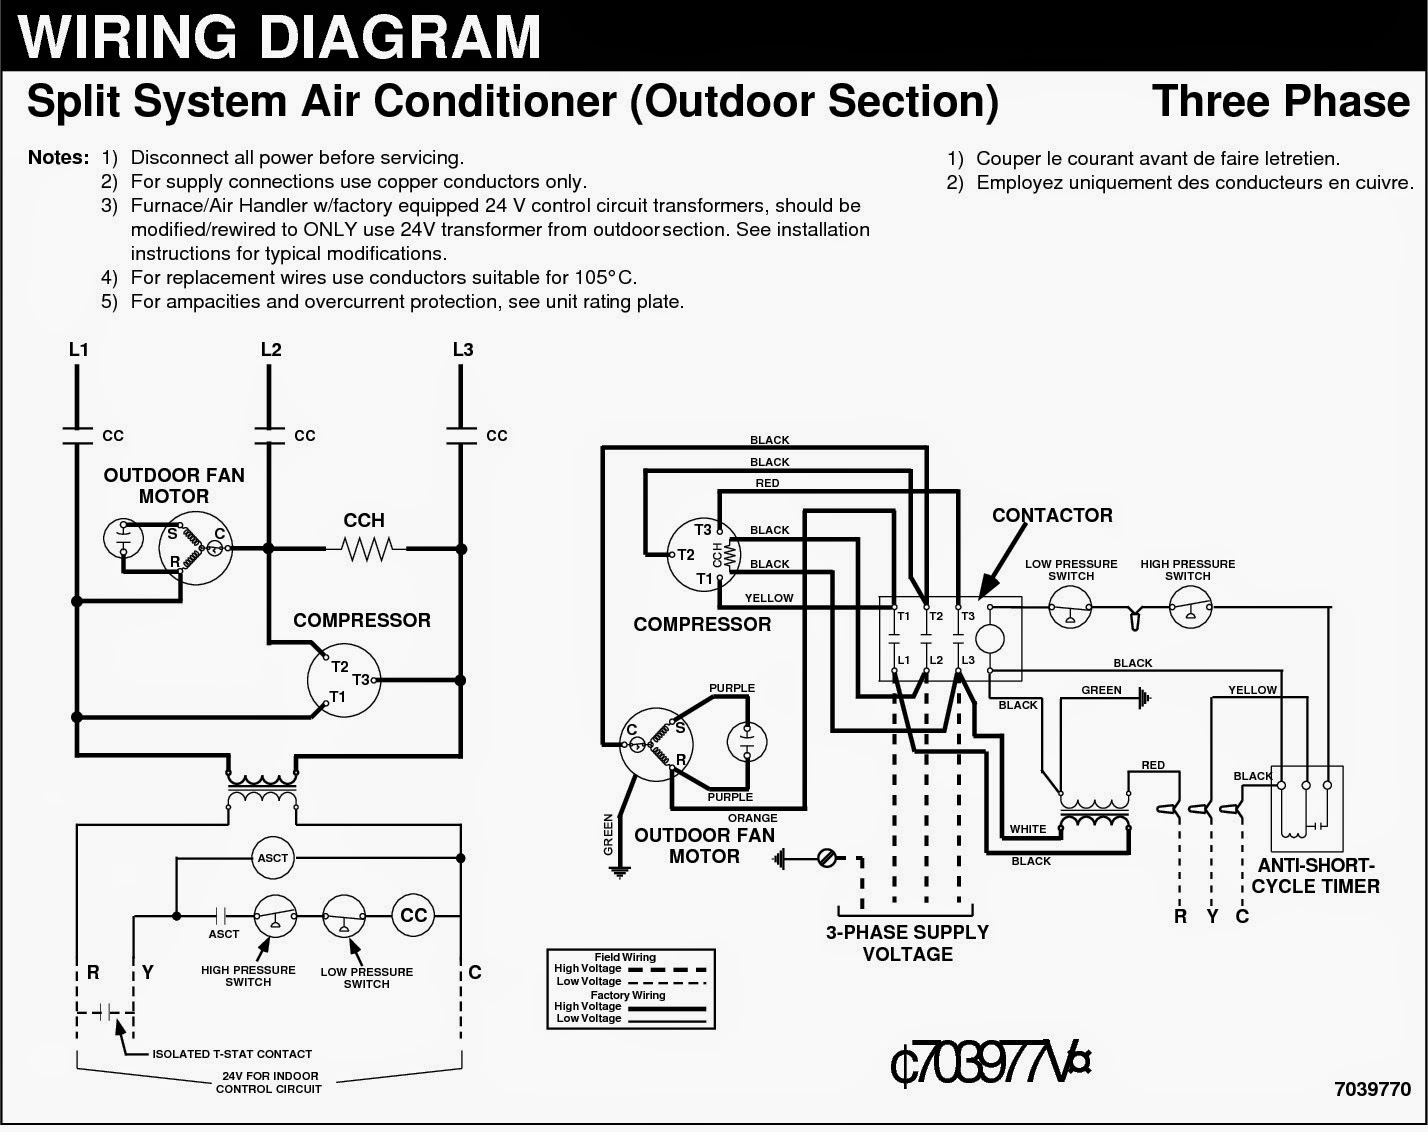 Electrical Wiring Diagrams For Air Conditioning Systems Part Two Modern Residential Pdf Fig13 Split Cooling Units Three Phase Diagram